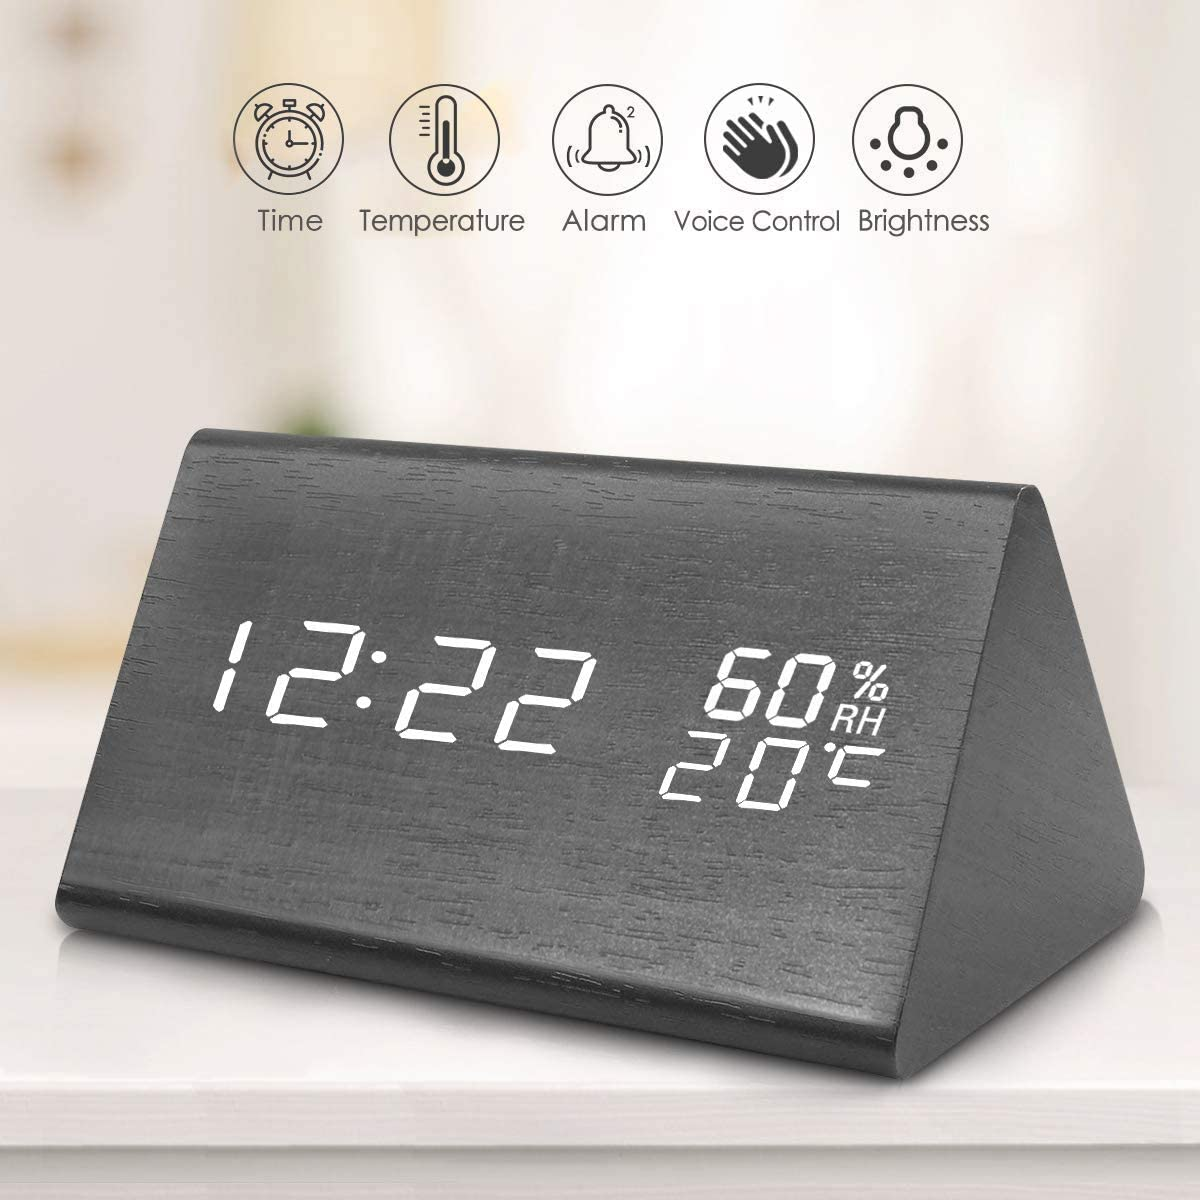 Fane Digital Alarm Clock, Wooden Clock with LED Time Display, 3 Alarm Settings, Humidity Temperature, Electric Clocks for Bedroom Bedside, Black